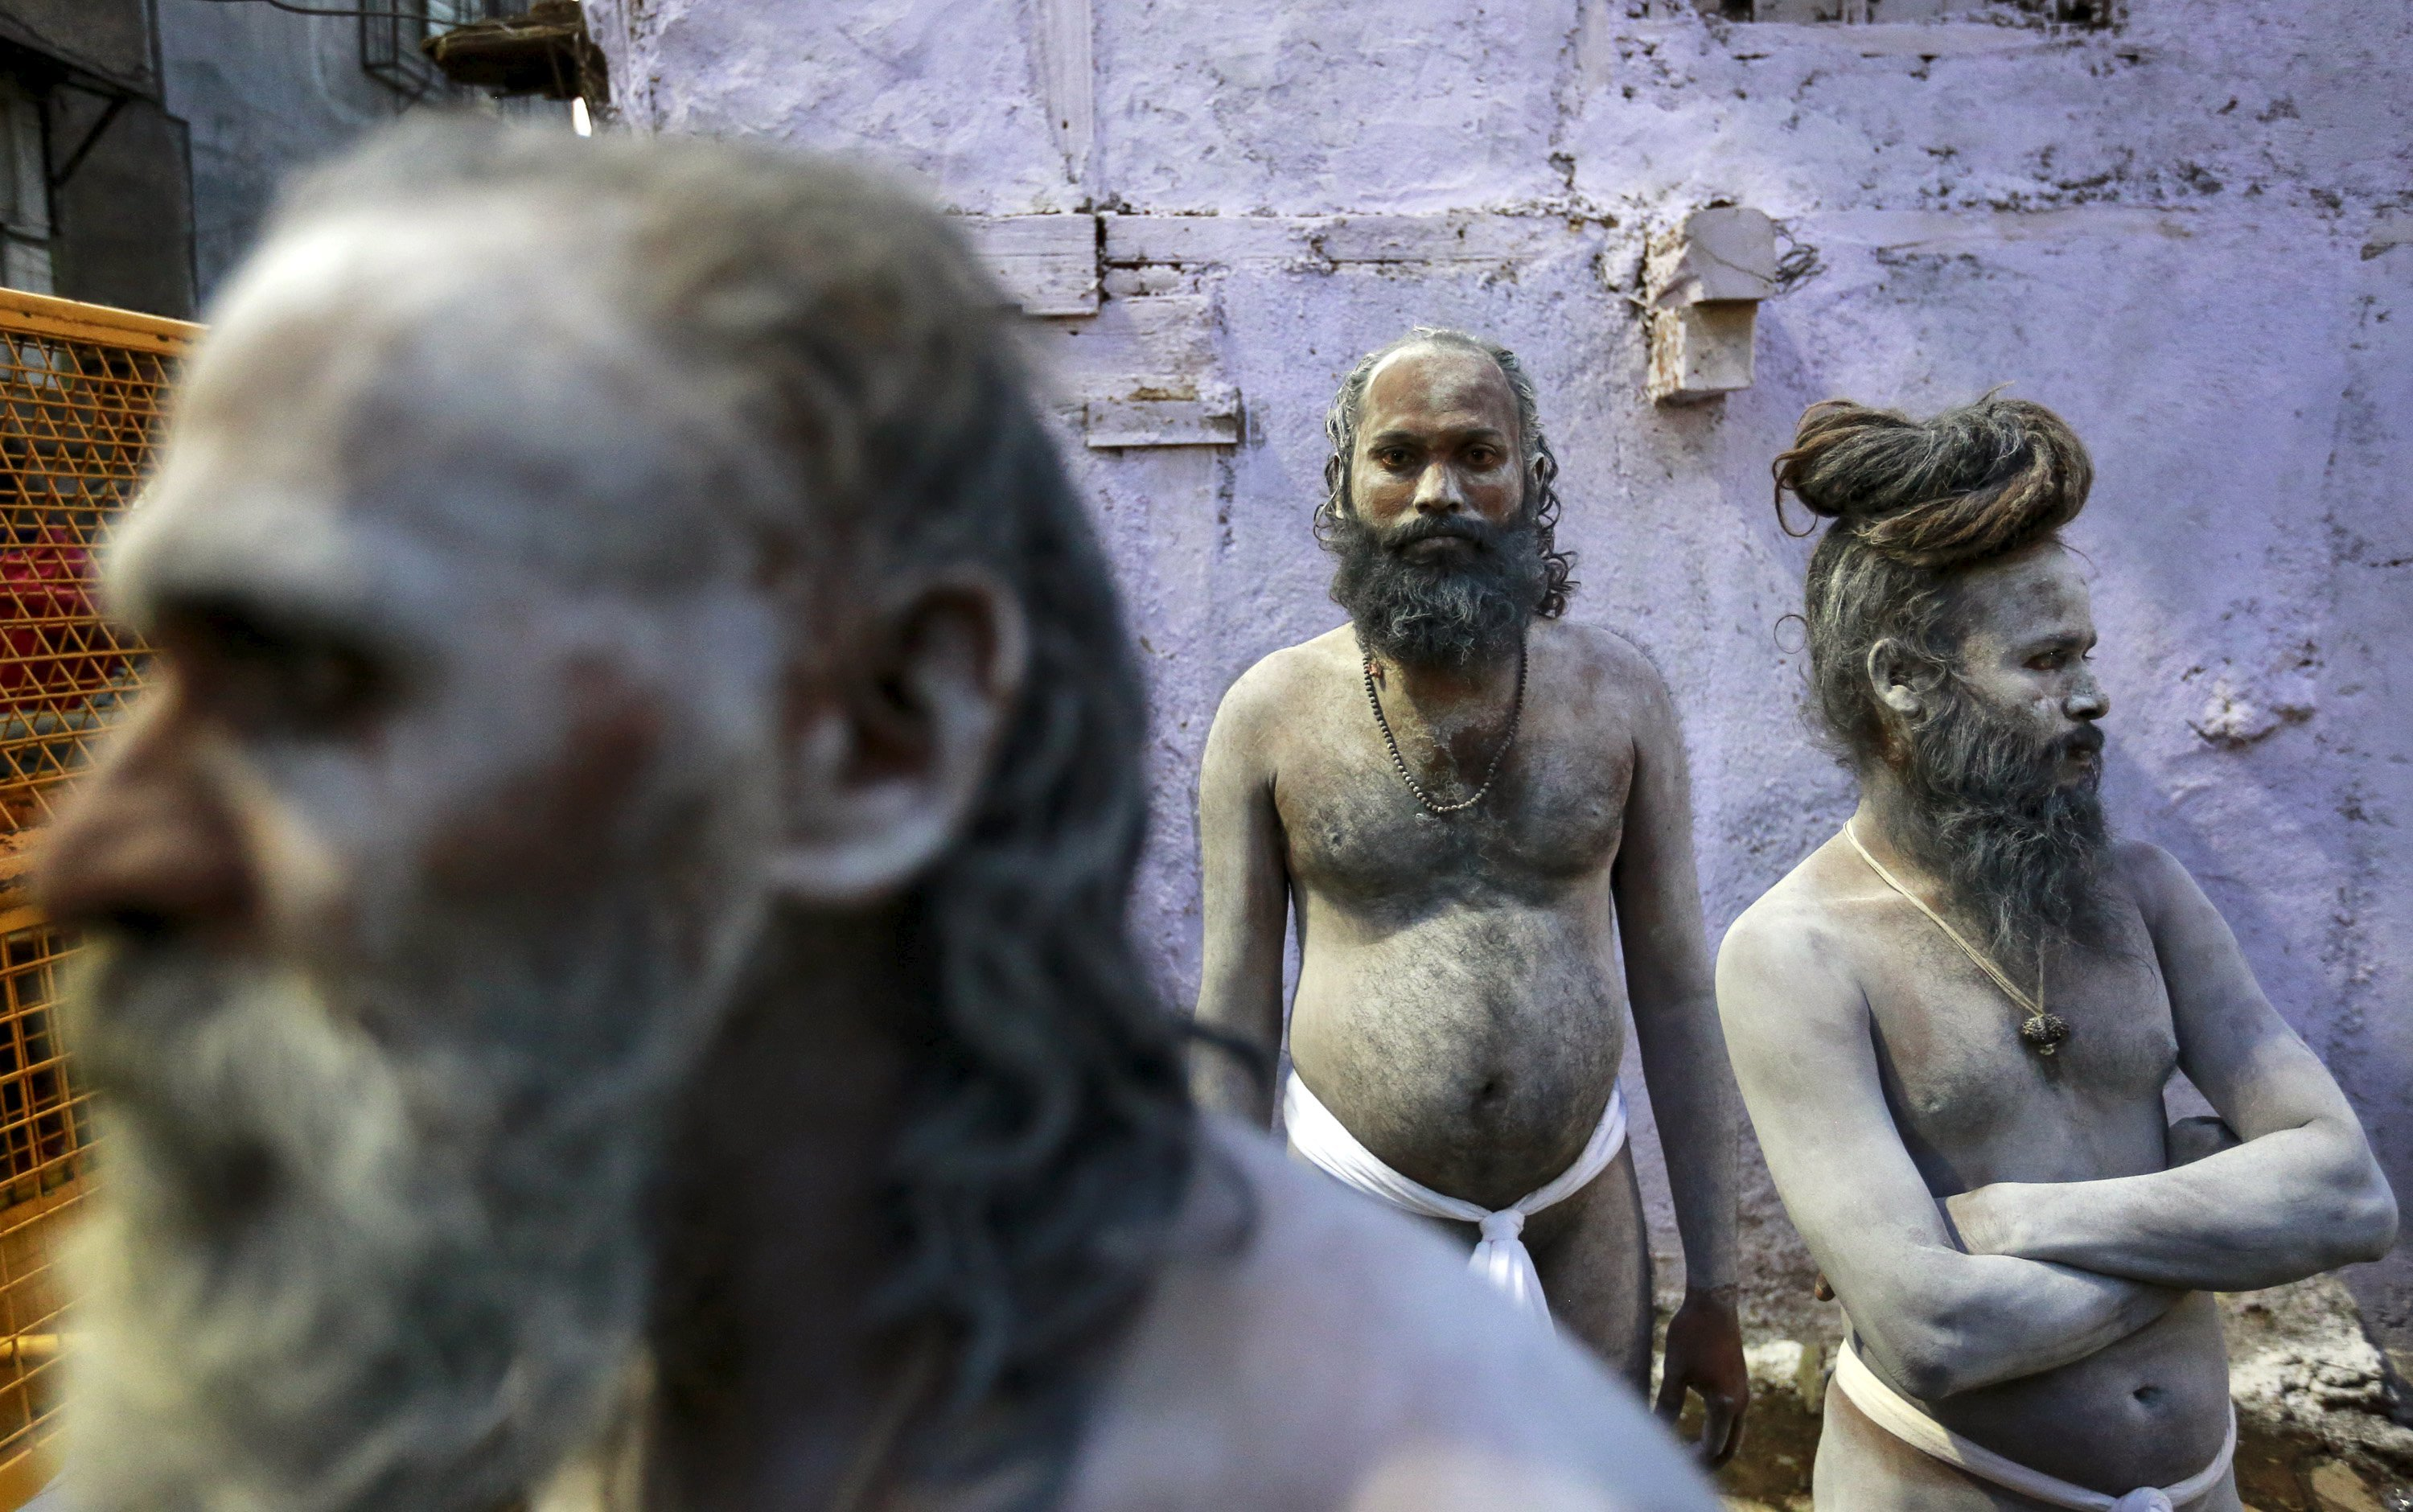 Naga Sadhus, or Hindu holy men, wait during a procession before taking a dip in a holy pond during the second  Shahi Snan  (grand bath) at Kumbh Mela in Trimbakeshwar, India, on Sept. 13, 2015.